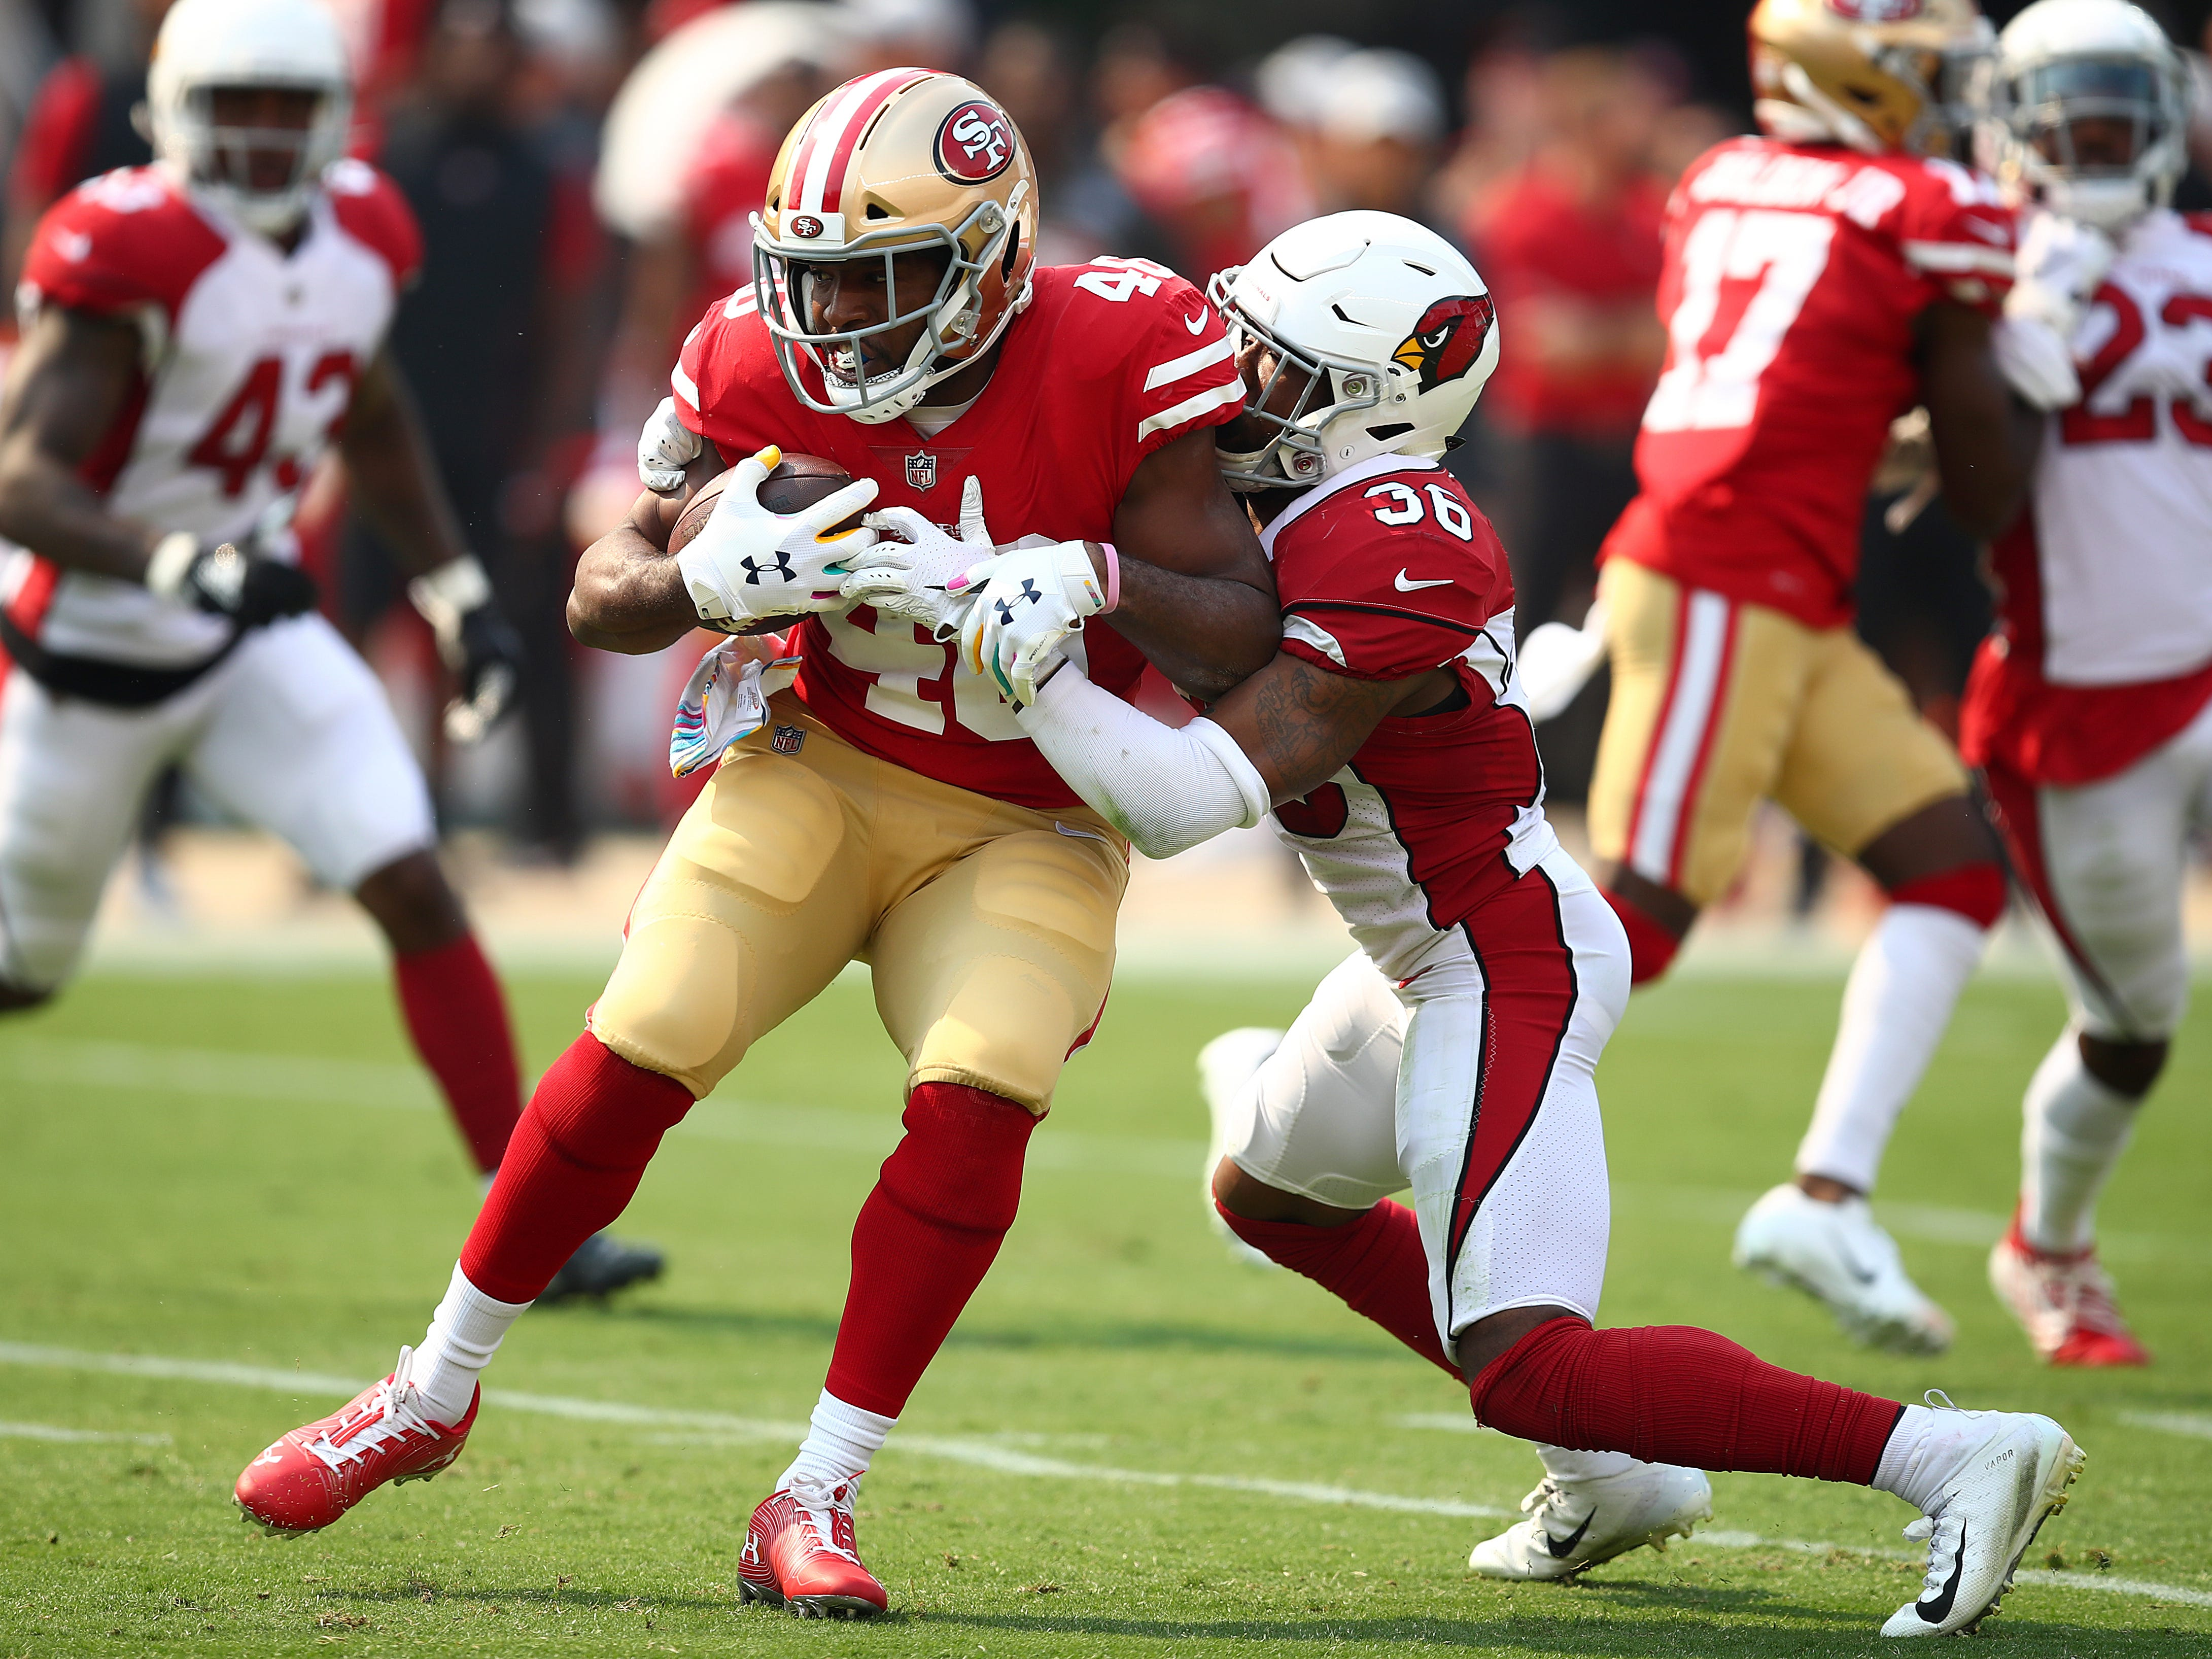 San Francisco 49ers running back Alfred Morris, left, runs against Arizona Cardinals safety Budda Baker (36) during the first half of an NFL football game in Santa Clara, Calif., Sunday, Oct. 7, 2018.